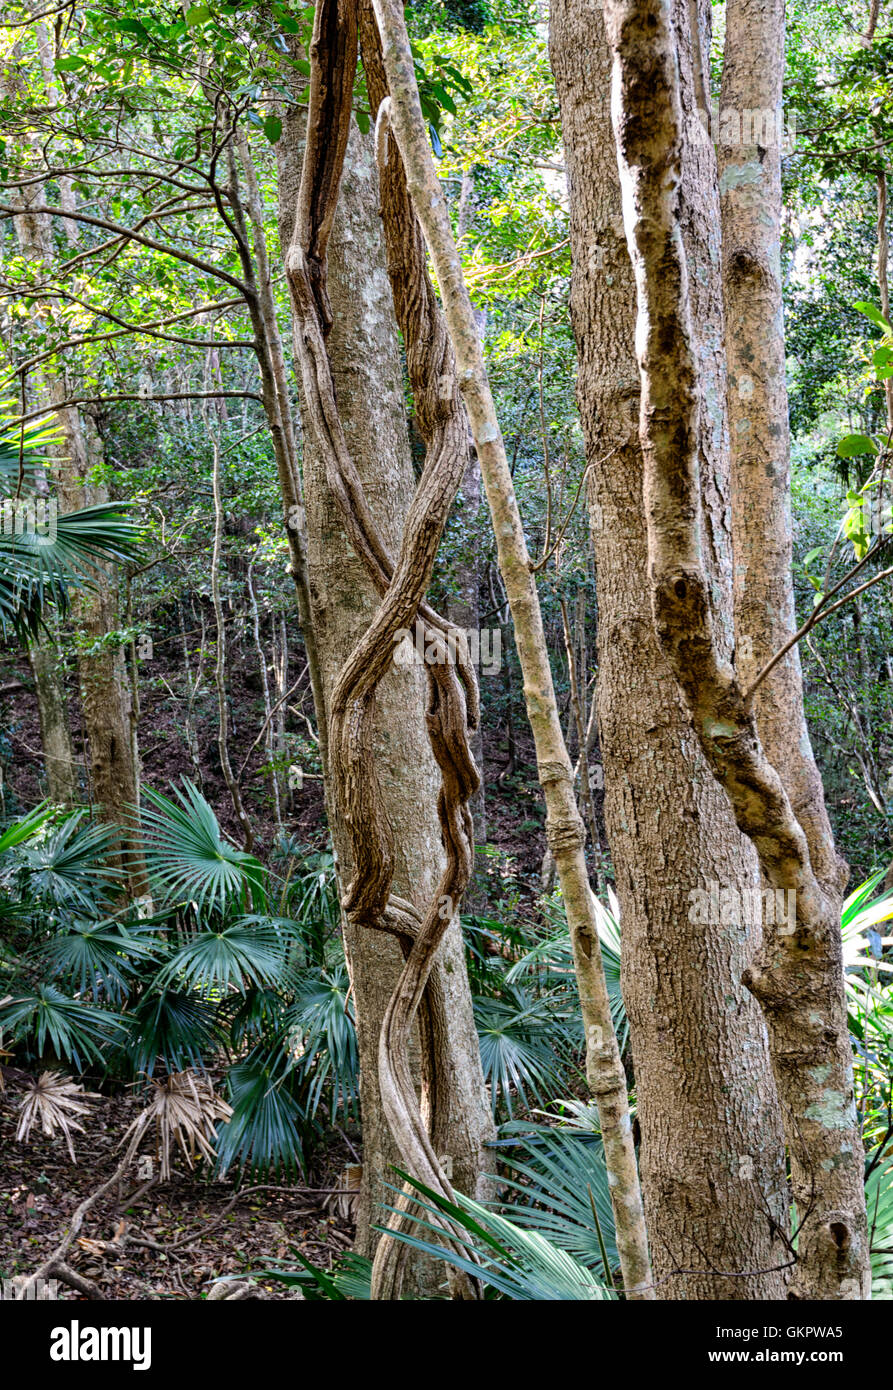 Twisted Lianas growing in the temperate Minnamurra Rainforest Centre, New South Wales, NSW, Australia - Stock Image